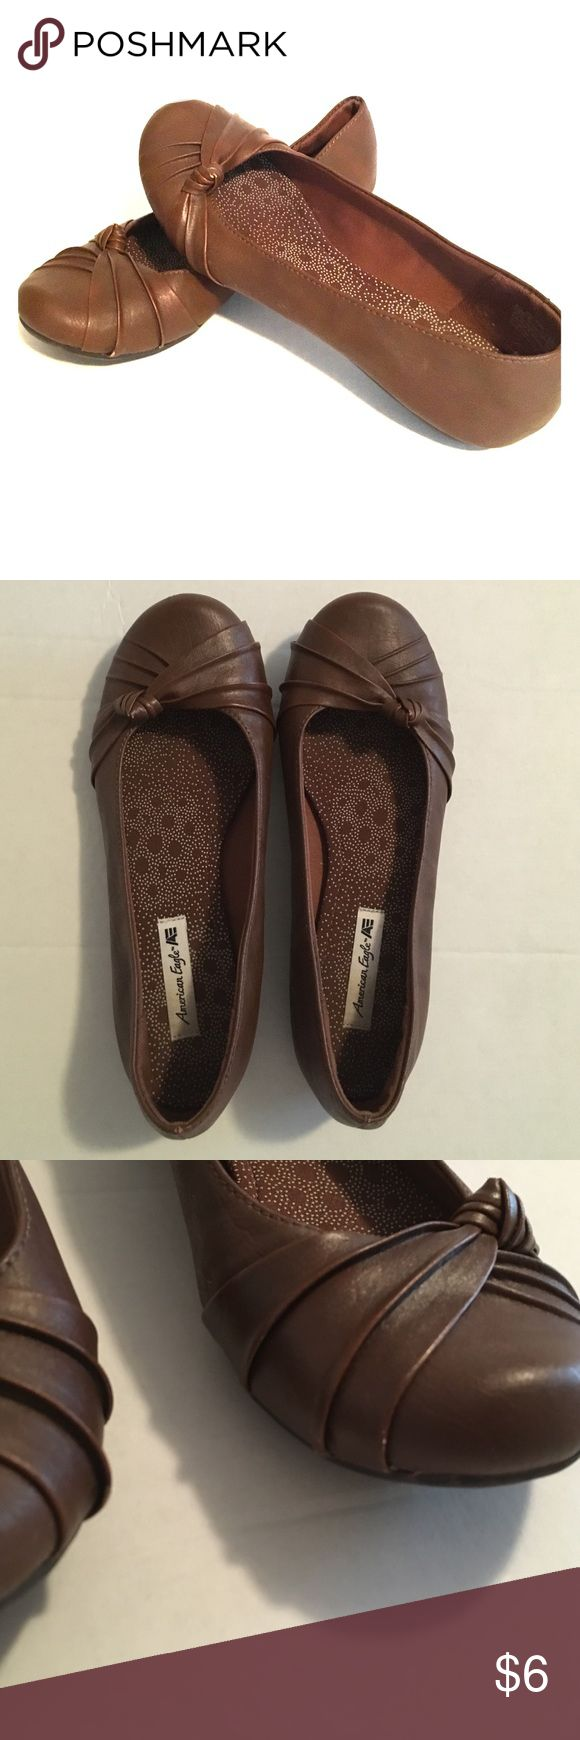 Brown flats American Eagle Size 6 brown flats with tie design on toe! American Eagle by Payless Shoes Flats & Loafers